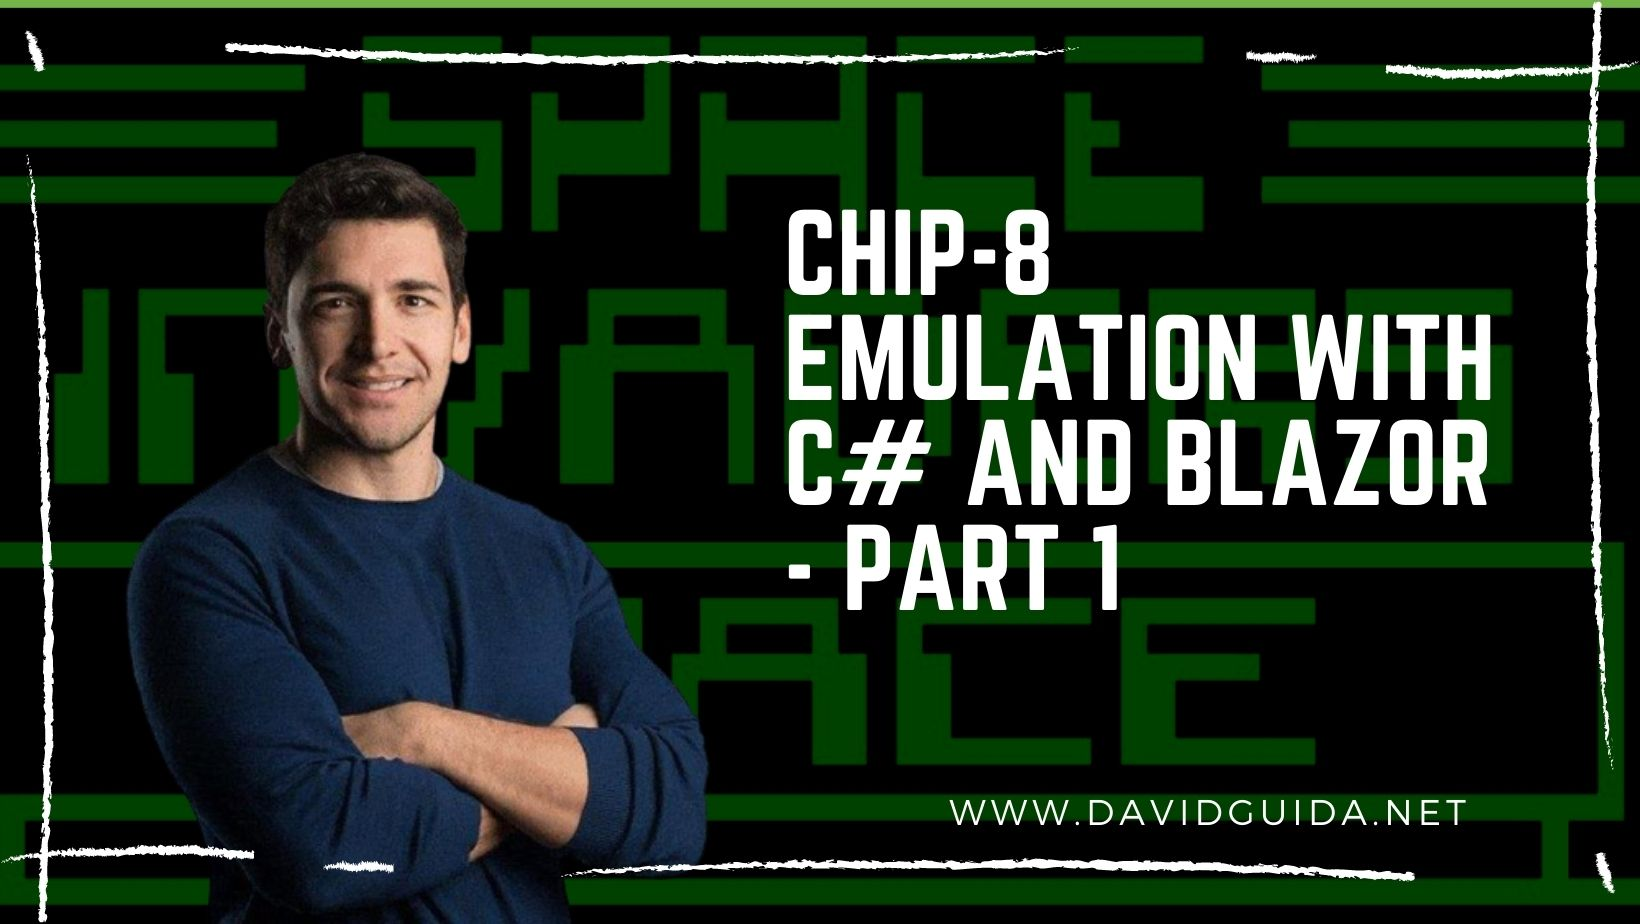 CHIP-8 emulation with C# and Blazor - part 1